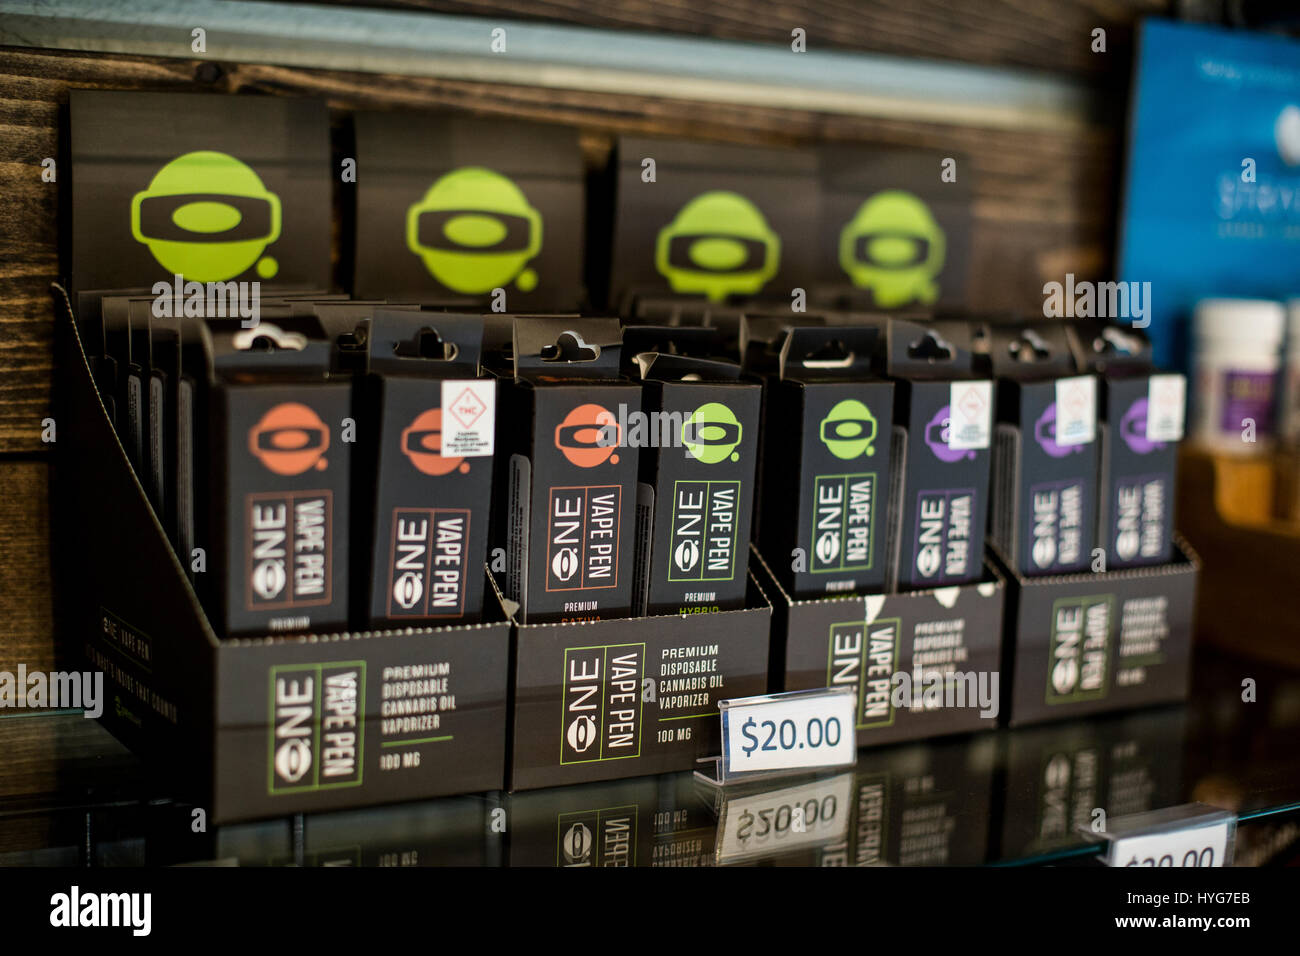 boxes of One brand vape pens on a shelf of a dispensary - Stock Image